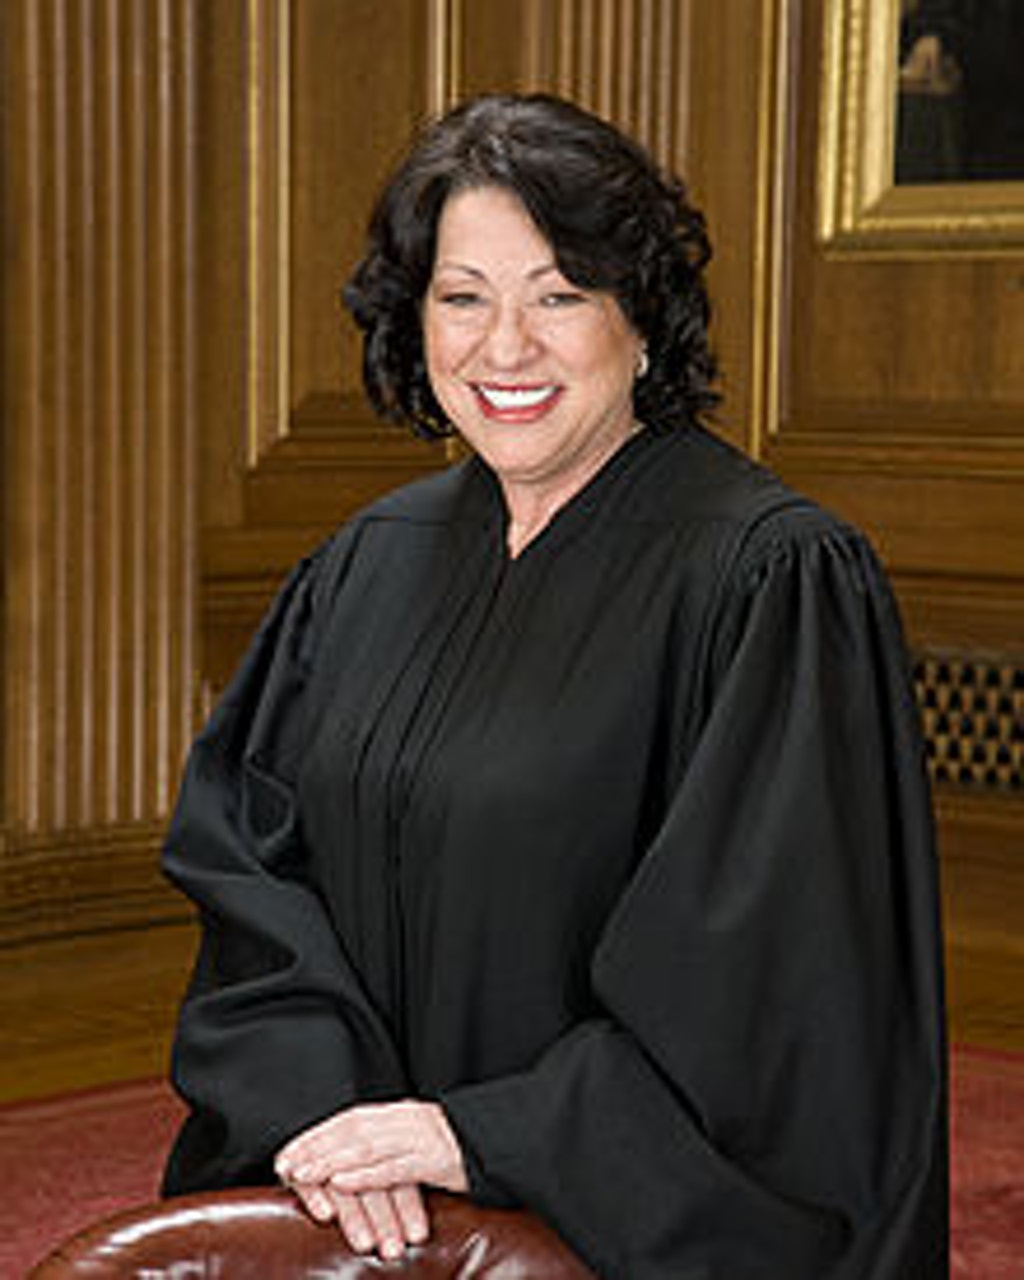 Justice Sotomayor Criticizes Supreme Court For Failing to Intervene in Texas Death-Row Prisoner's Case